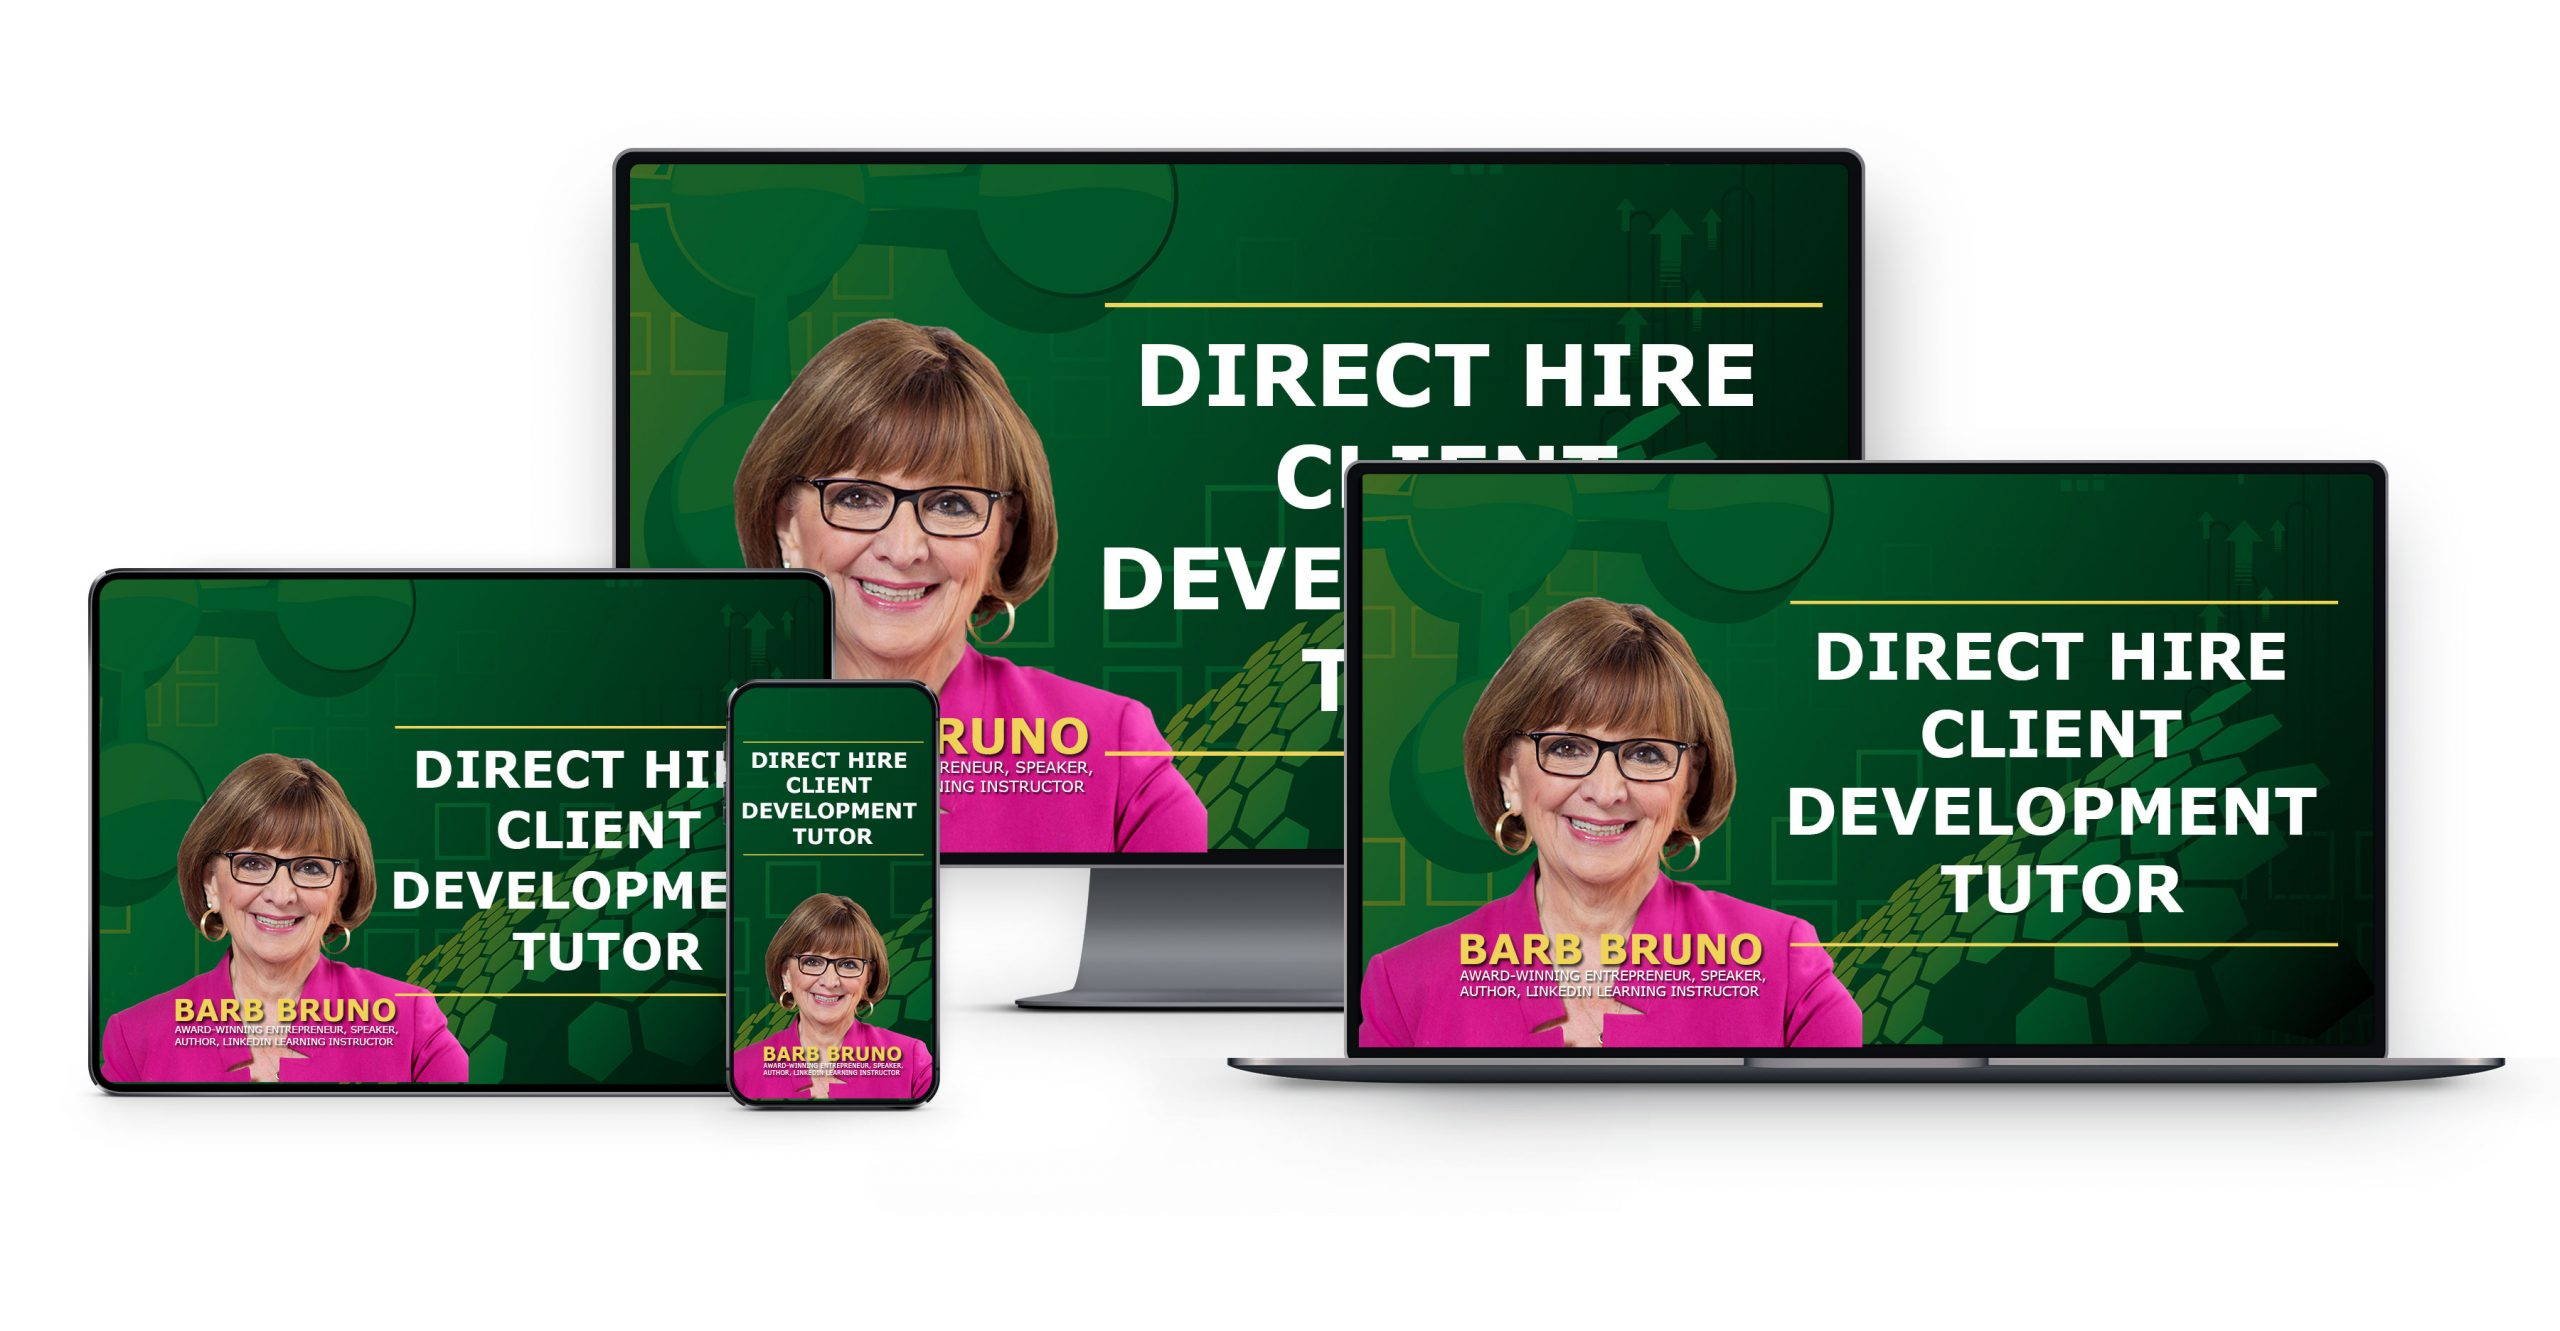 direct-hire-client-development-tutor